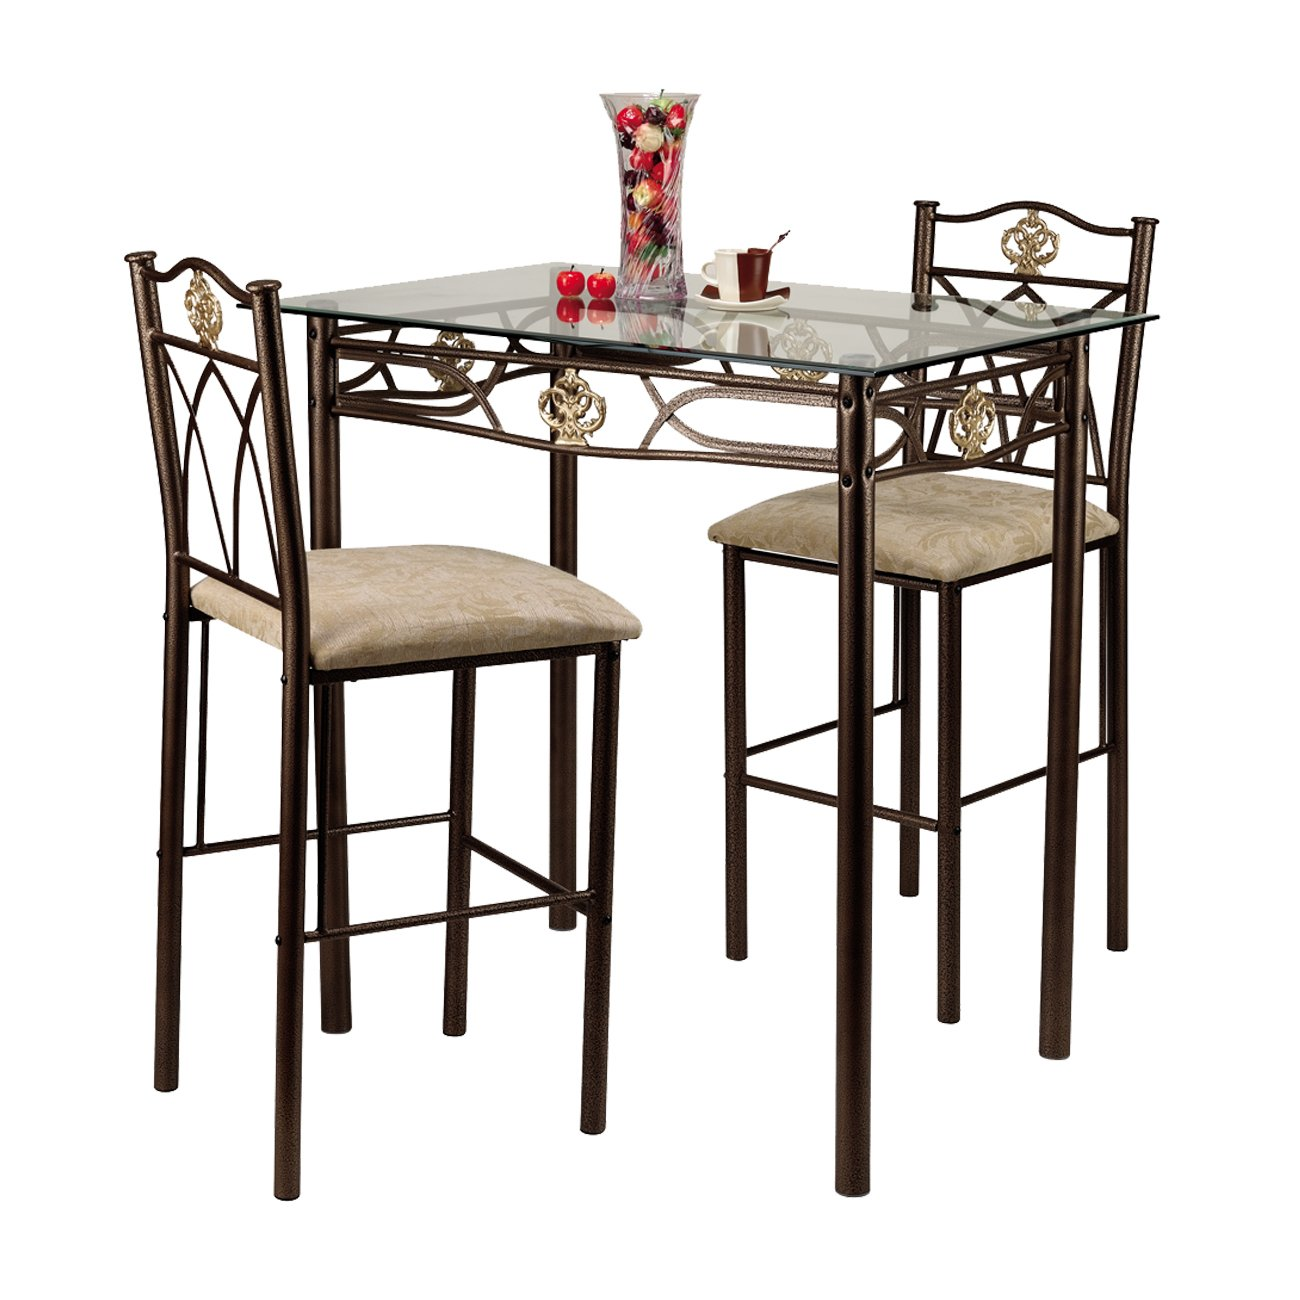 Amazon Home Source Industries Crown Bistro 3 Piece Dining Set With Glass Table Top And 2 Chairs Kitchen